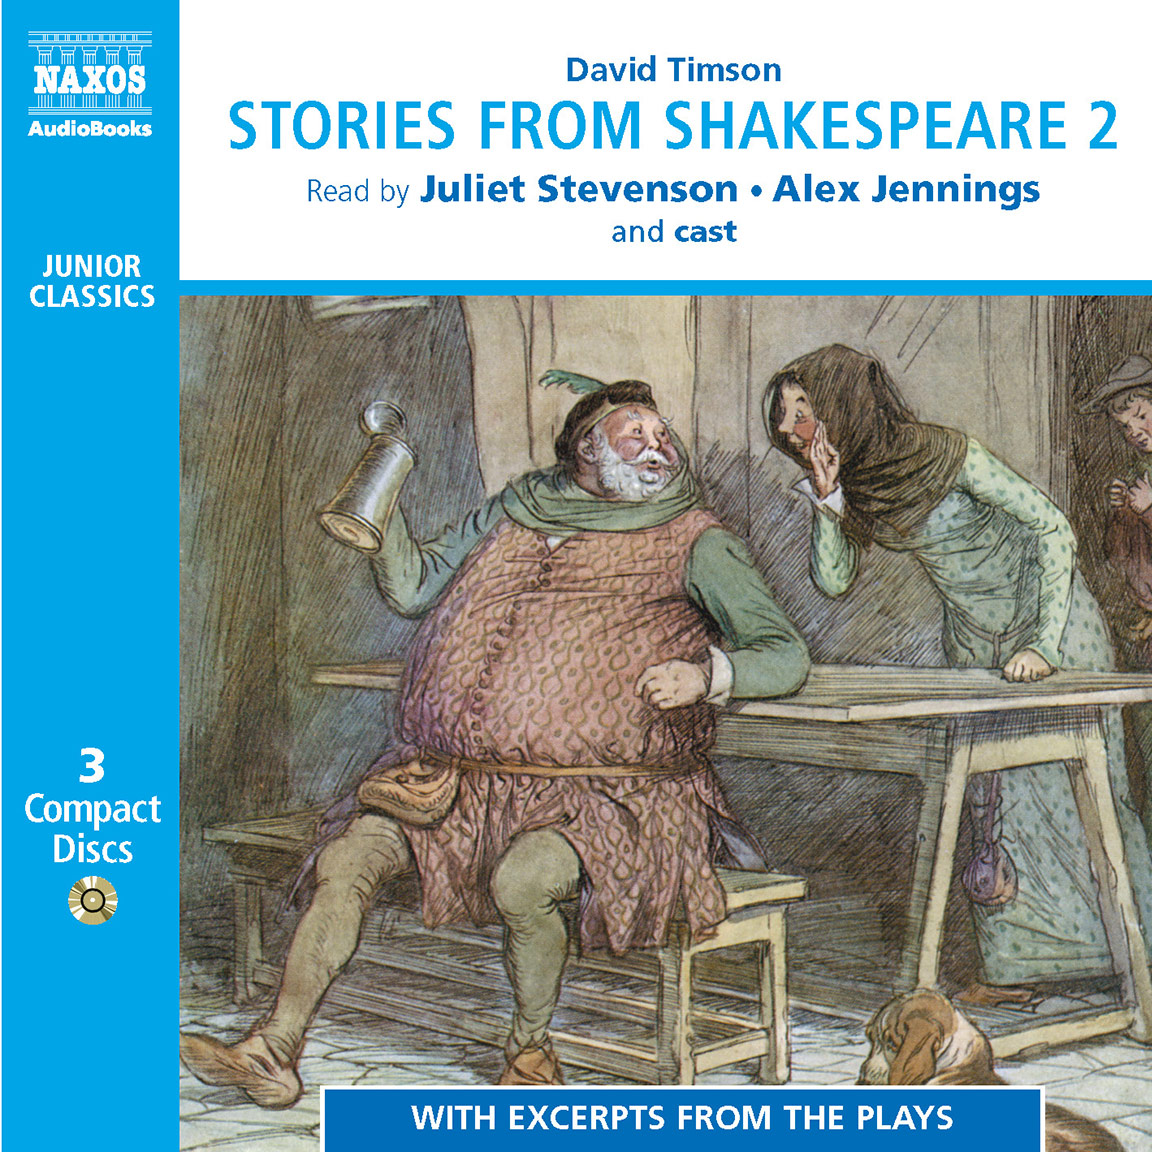 Stories from Shakespeare 2 (unabridged)